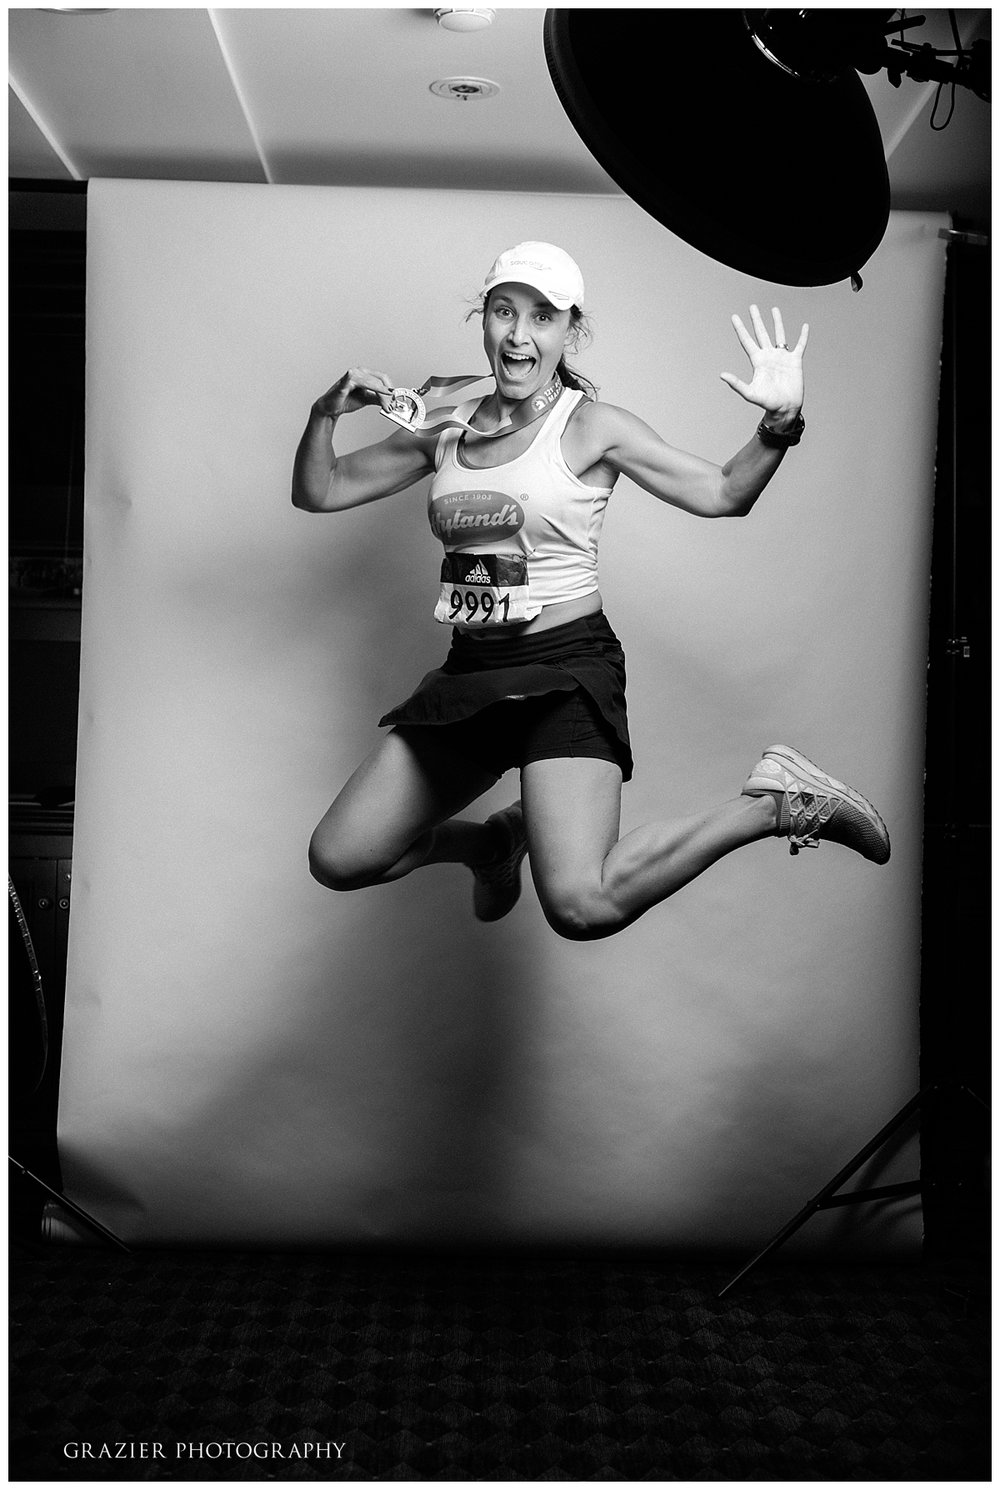 Grazier_Photo_Hylands_Boston_Marathon_2017-22_WEB.jpg